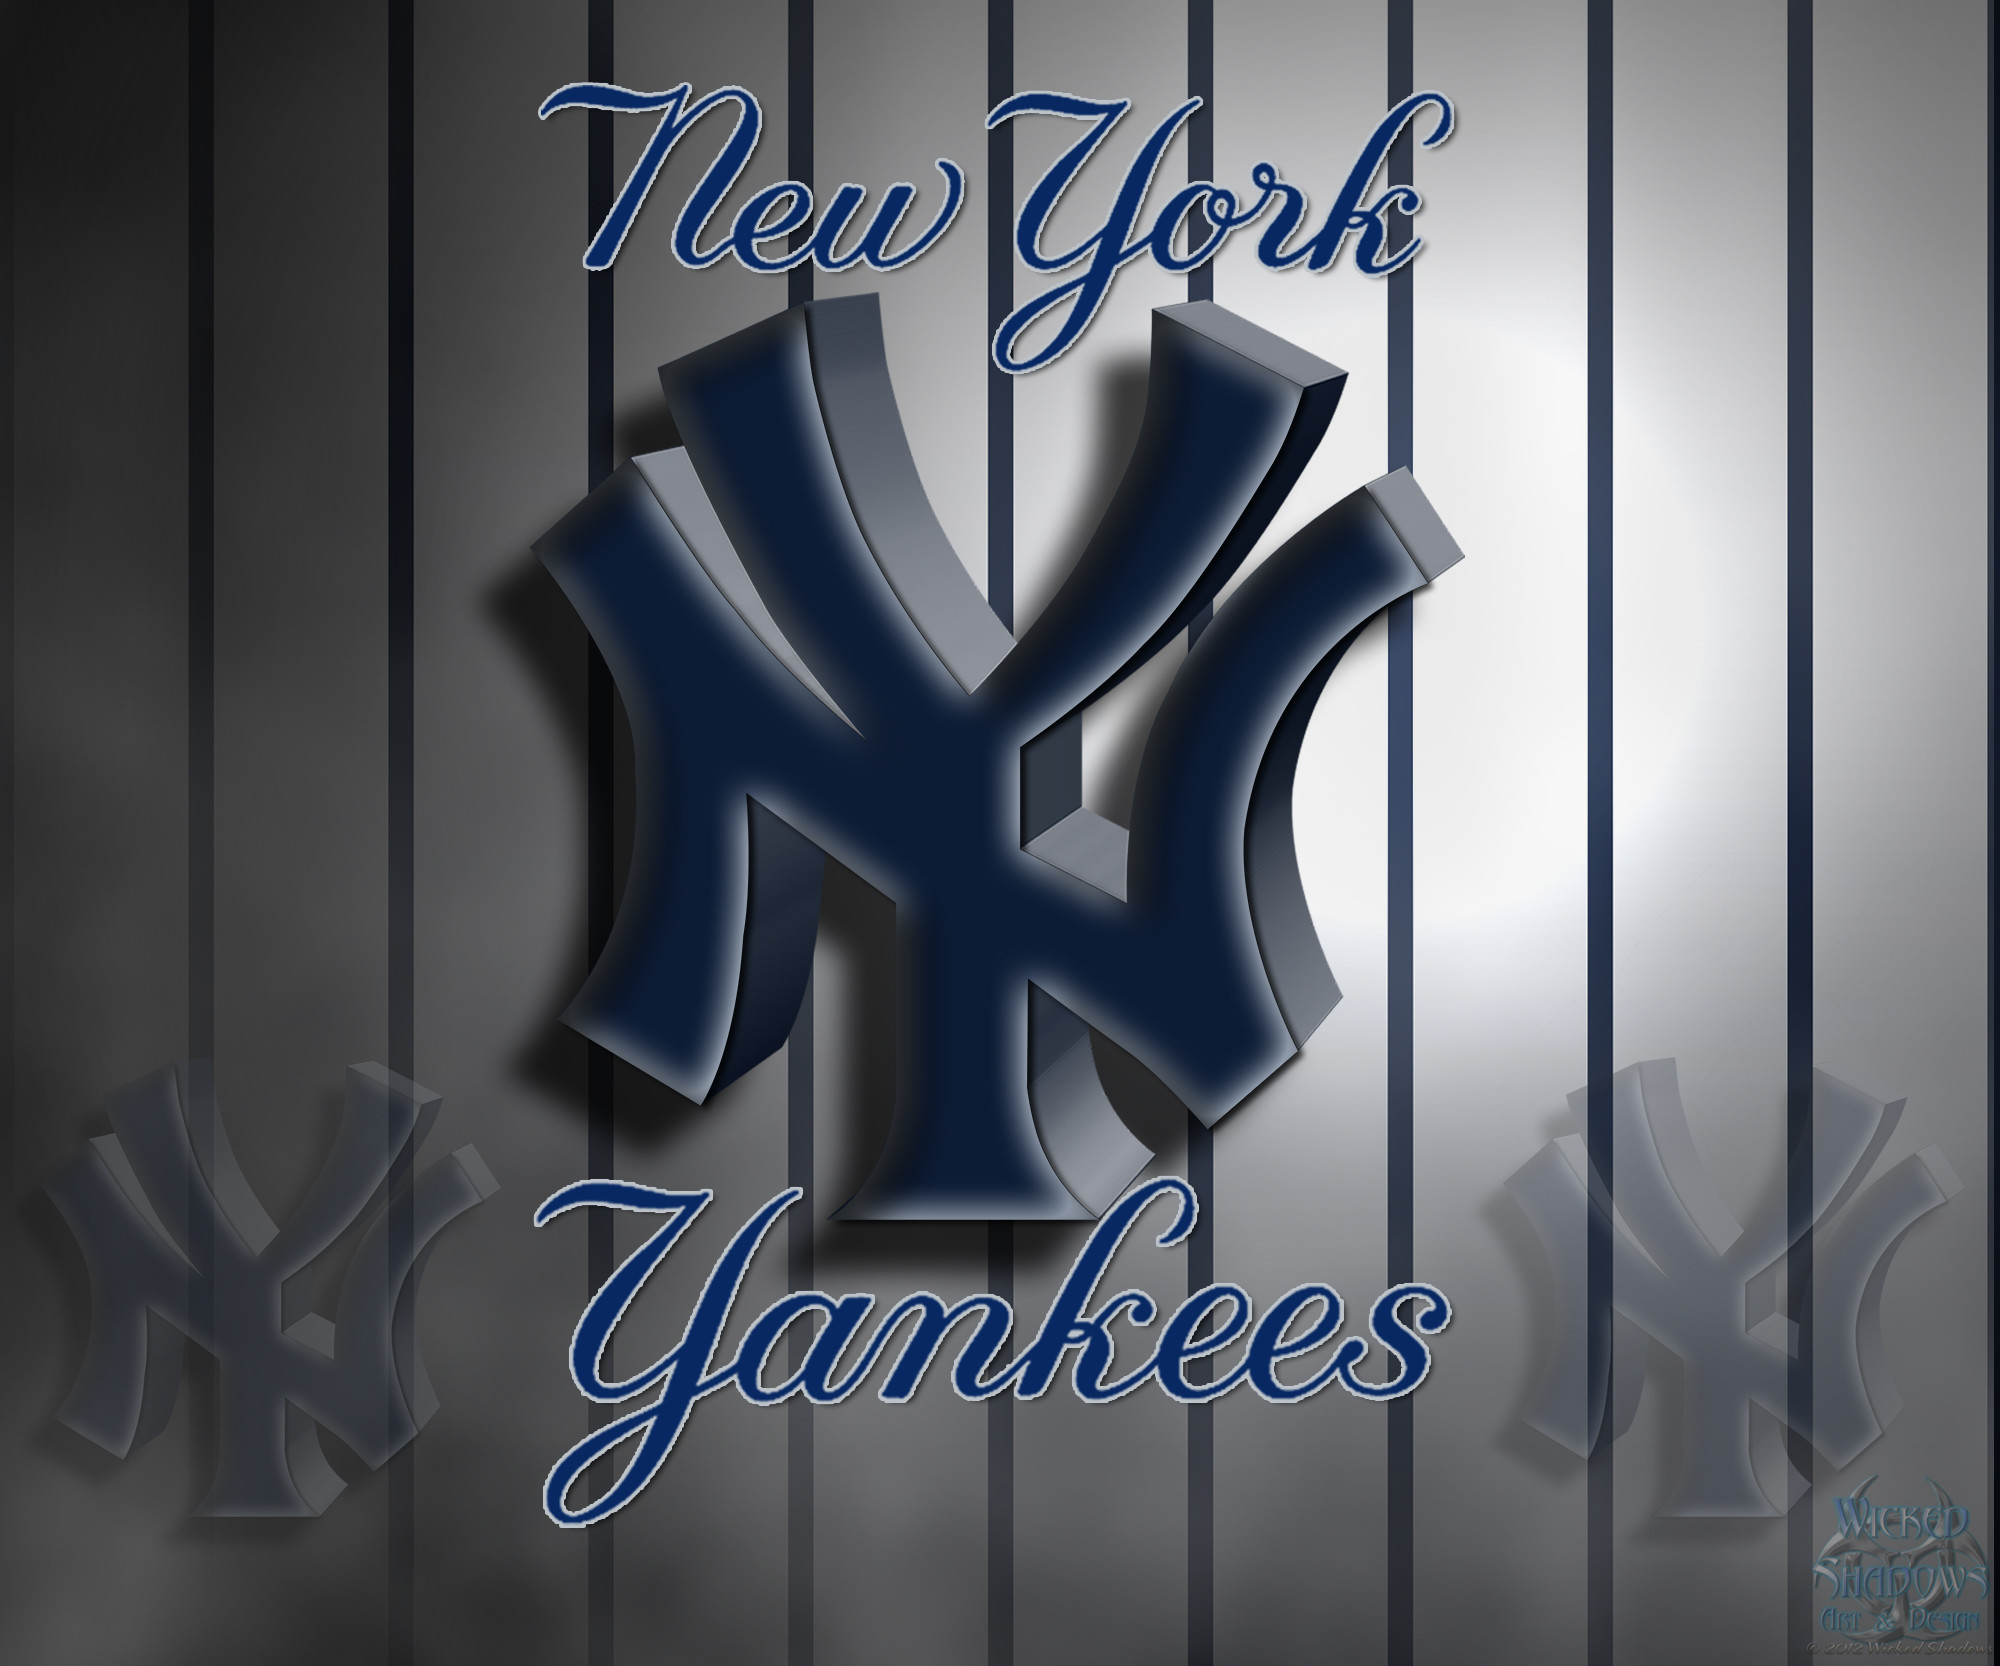 2000x1666 New York Yankees iPhone Wallpaper